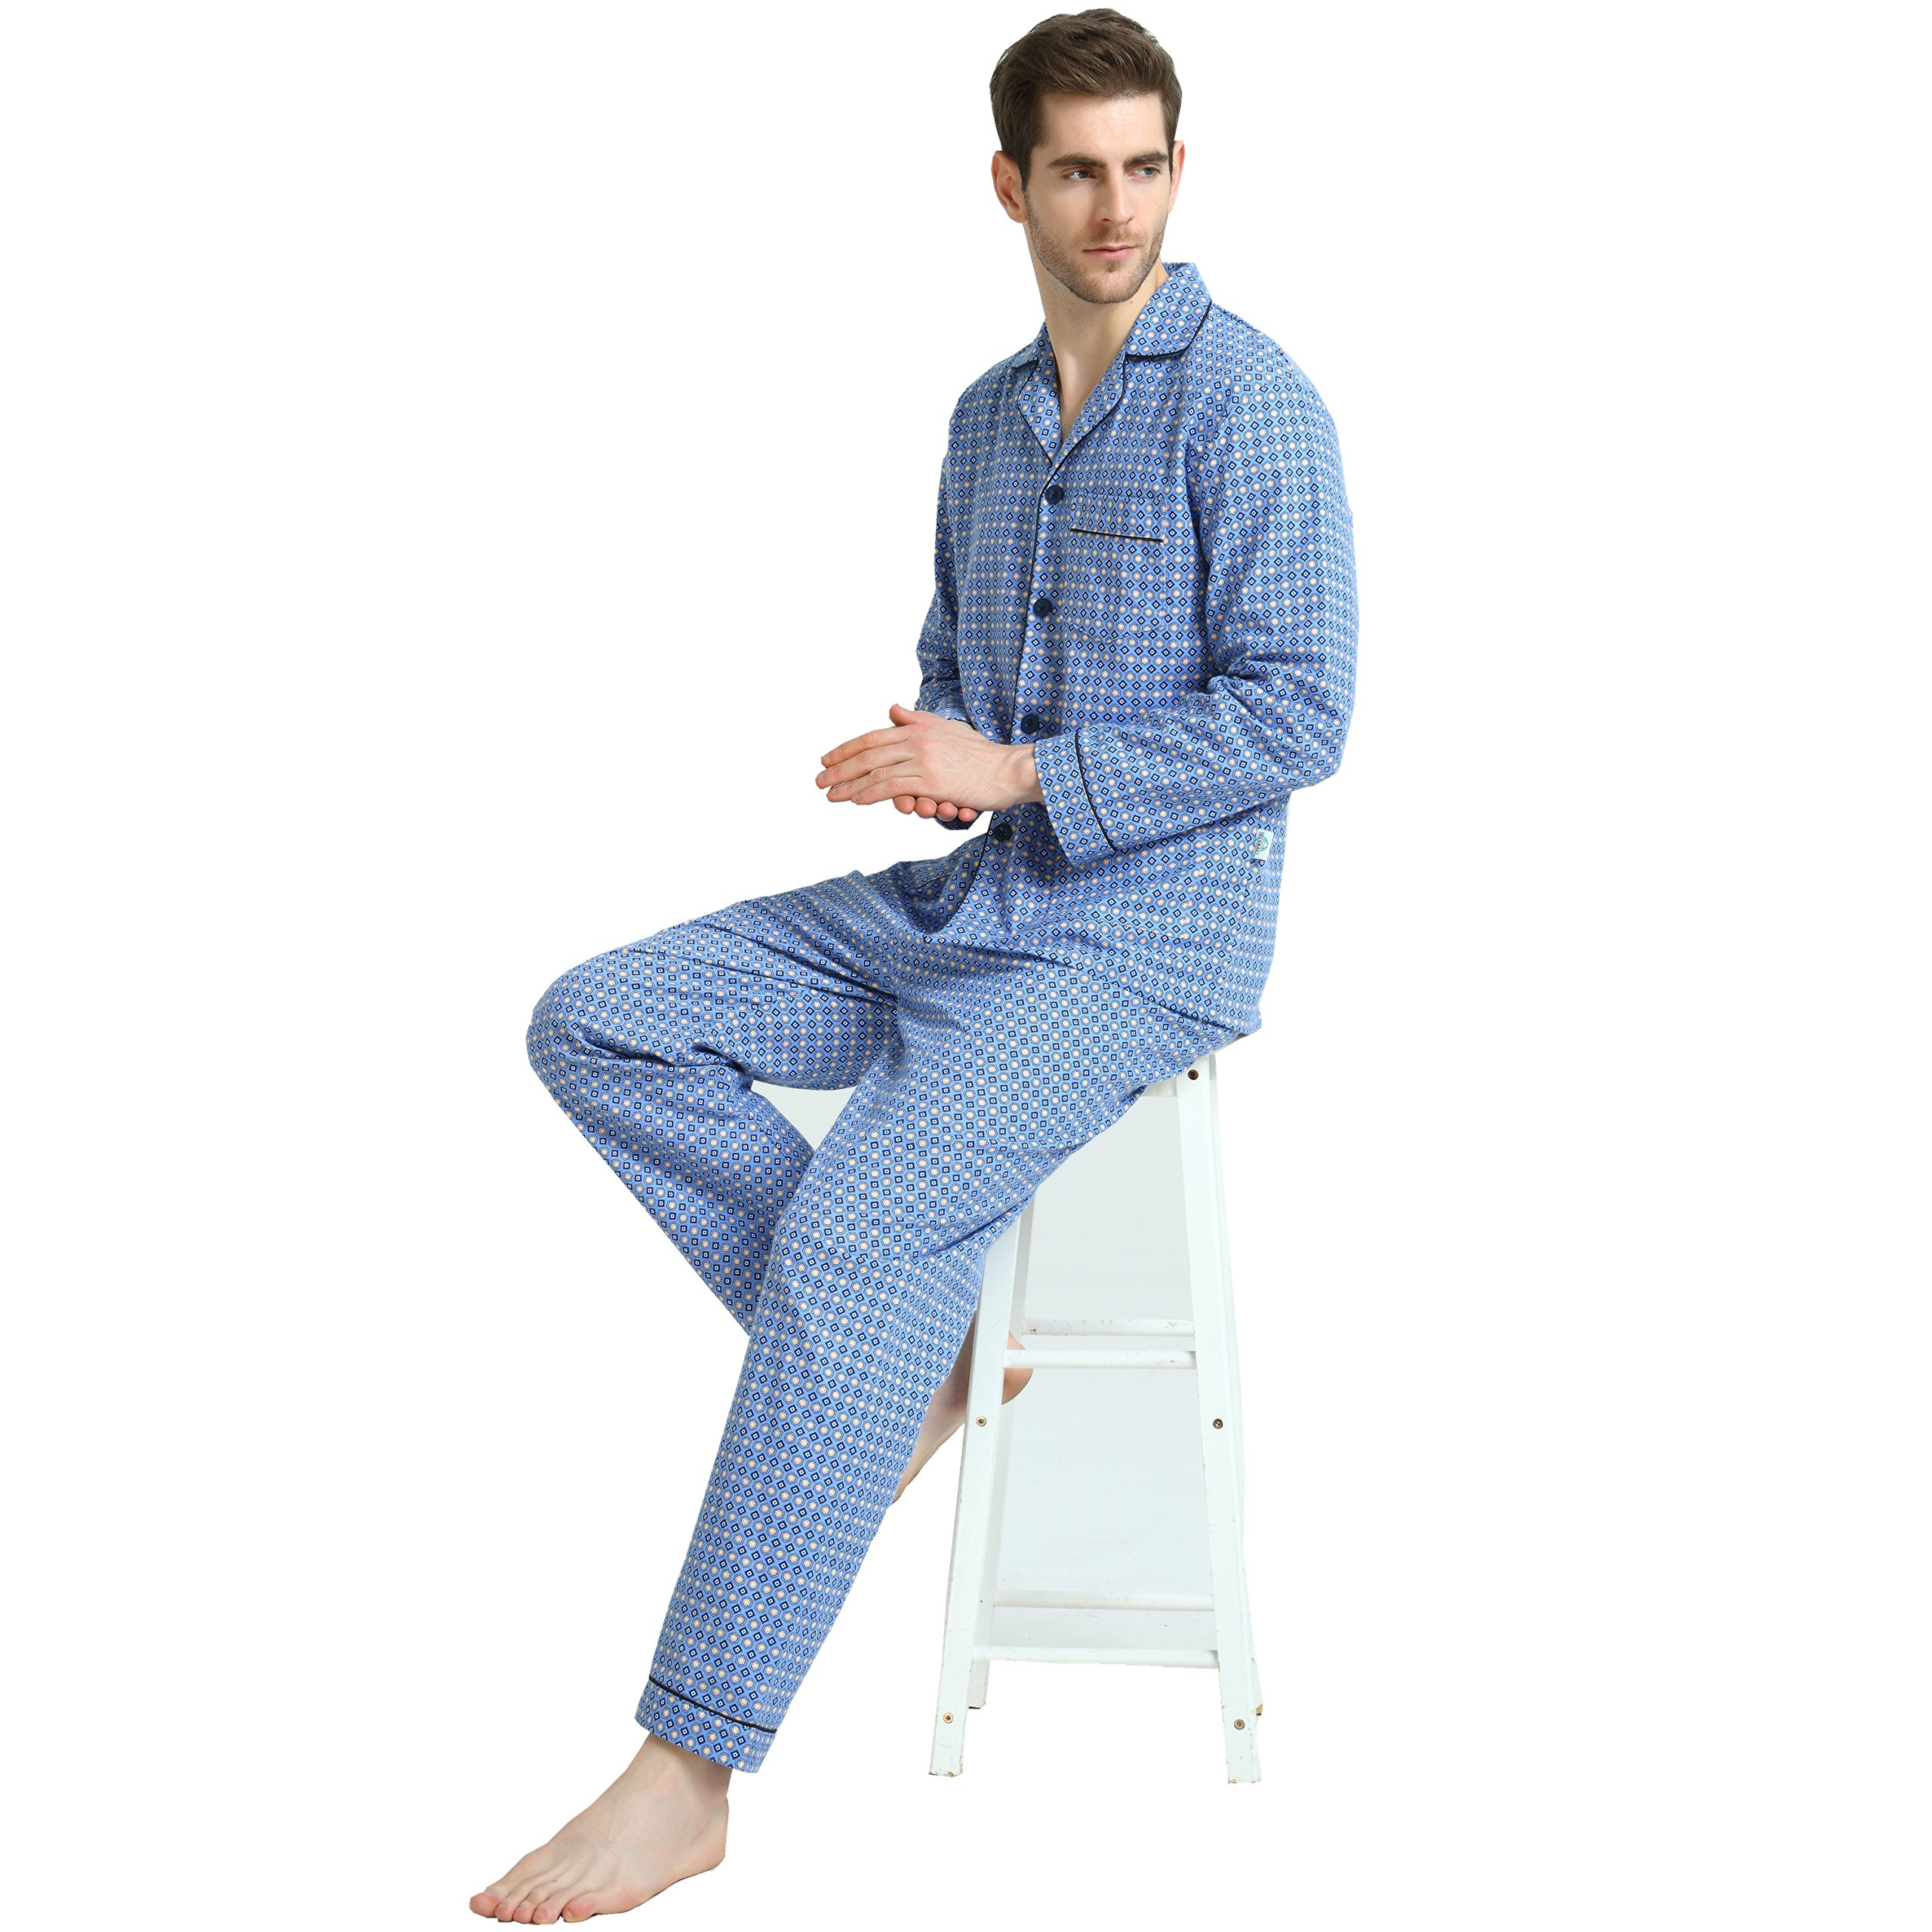 Cotton Sleepwear/Loungewear Sets for Men,100% Fleece Warm Pj Top and Bottom by GLOBAL (Image #2)